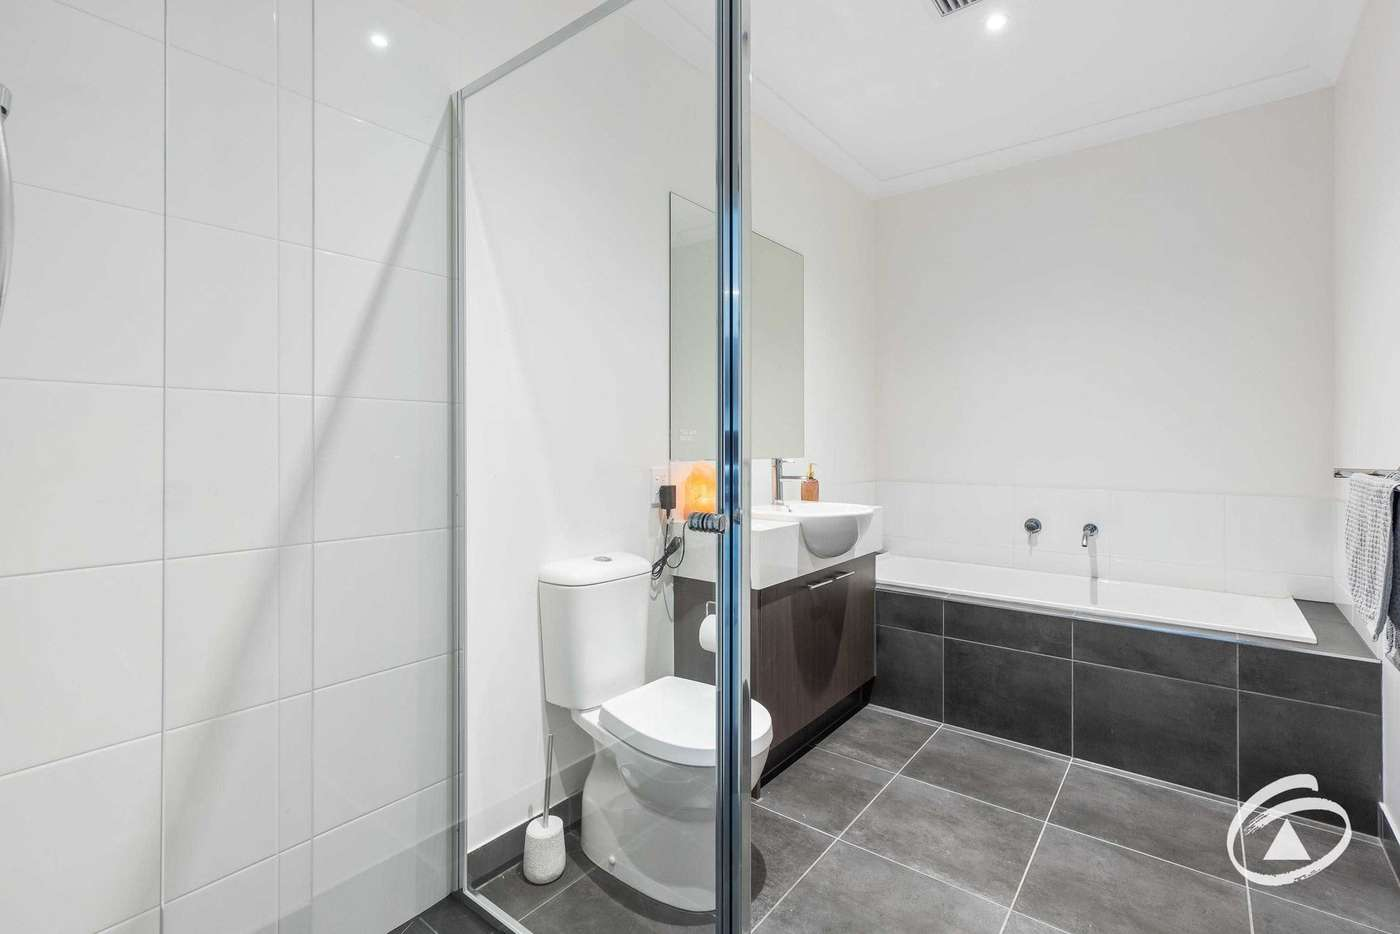 Fifth view of Homely house listing, 21 Kate Avenue, Hampton Park VIC 3976